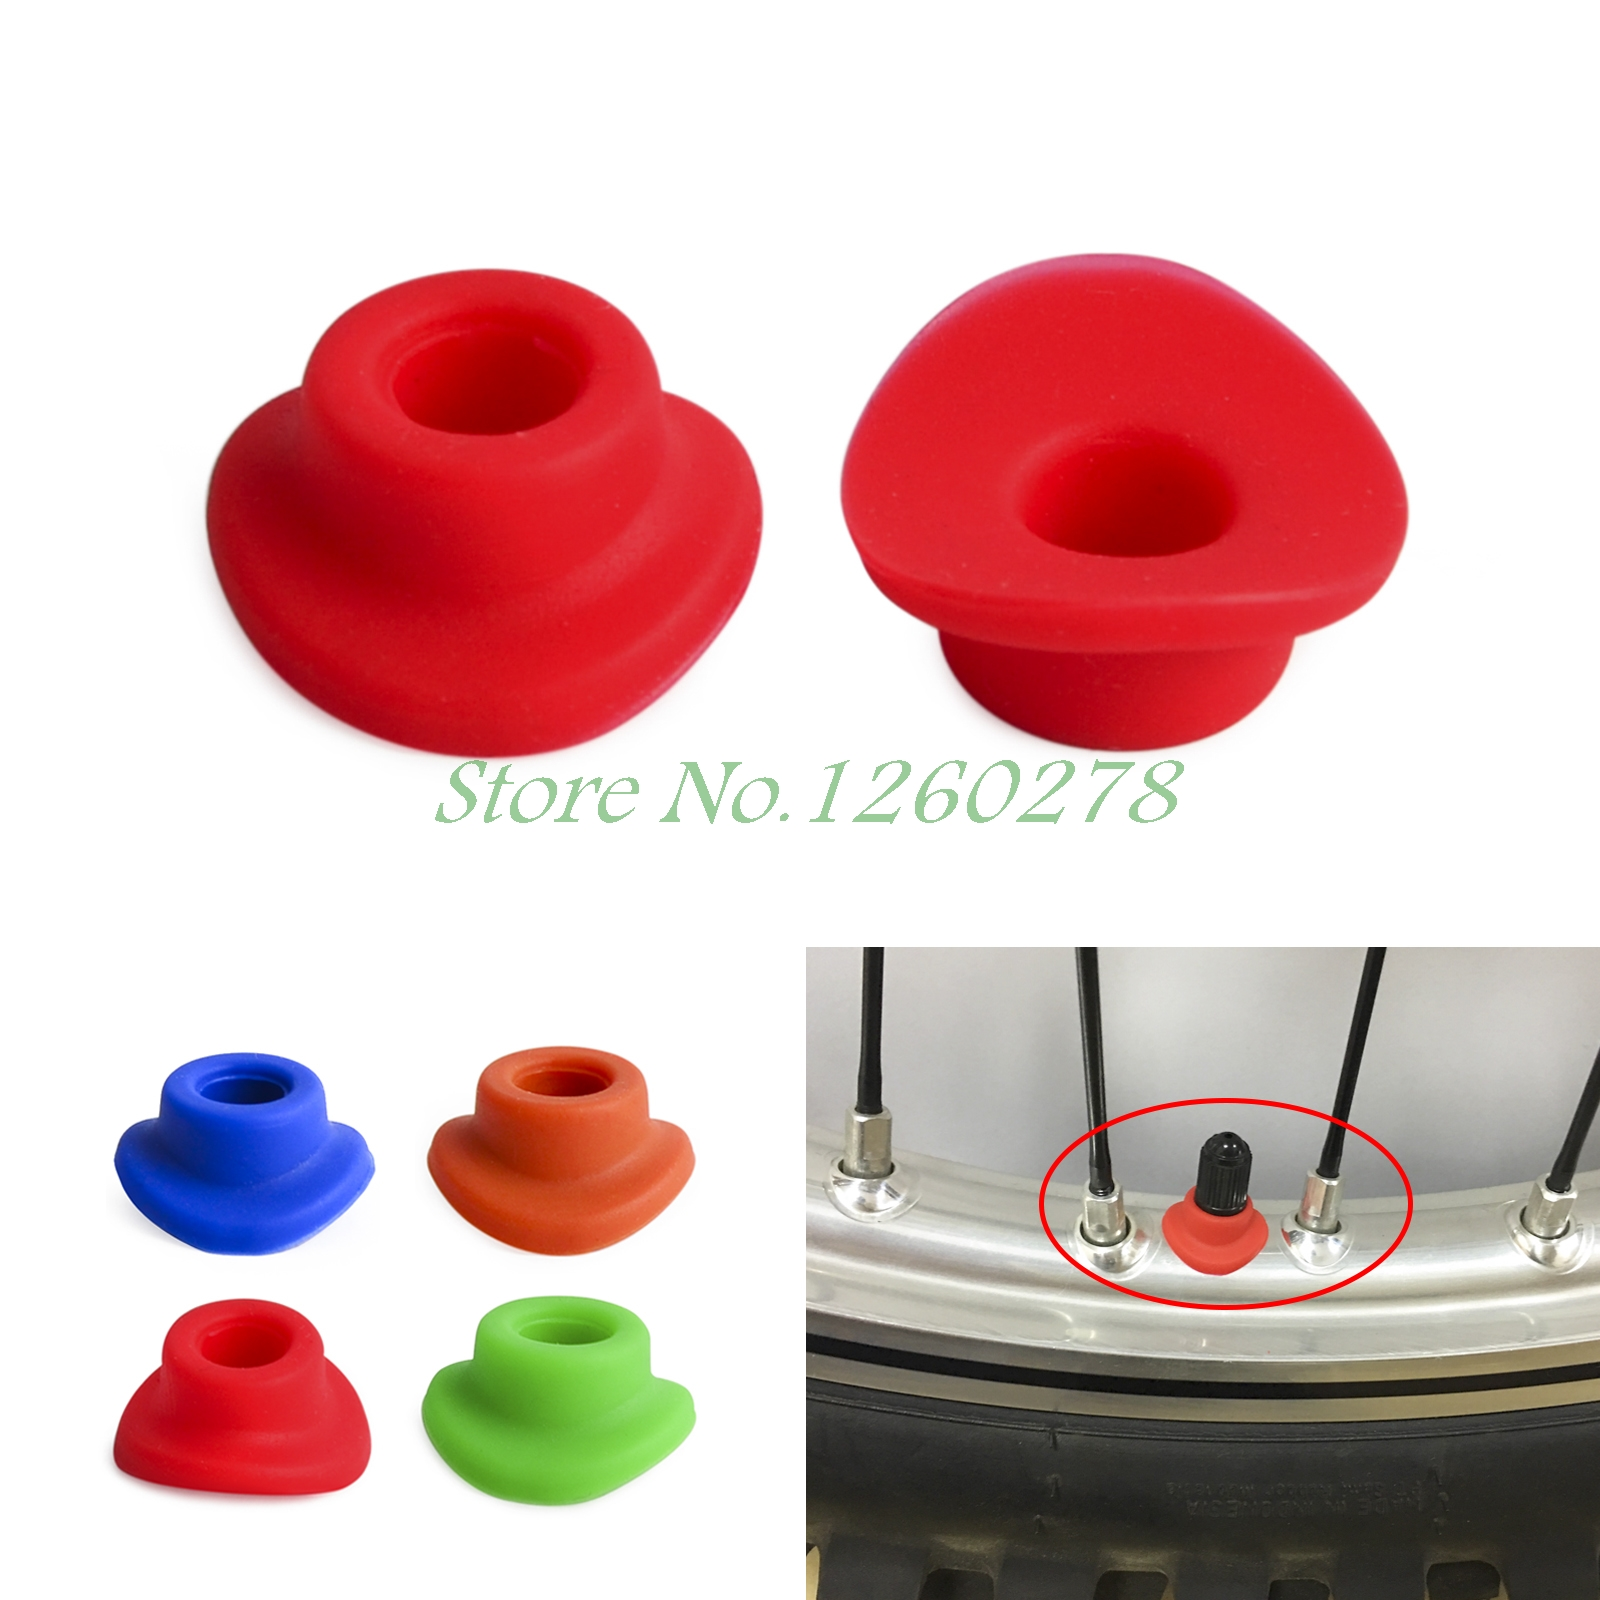 Air Valve Sleeve Waterproof Pad Rubber For Honda CR80R/85R CR125 250 CRF150R CRF250R/L CRF250X CRF450 CRF230F XR230 XR400